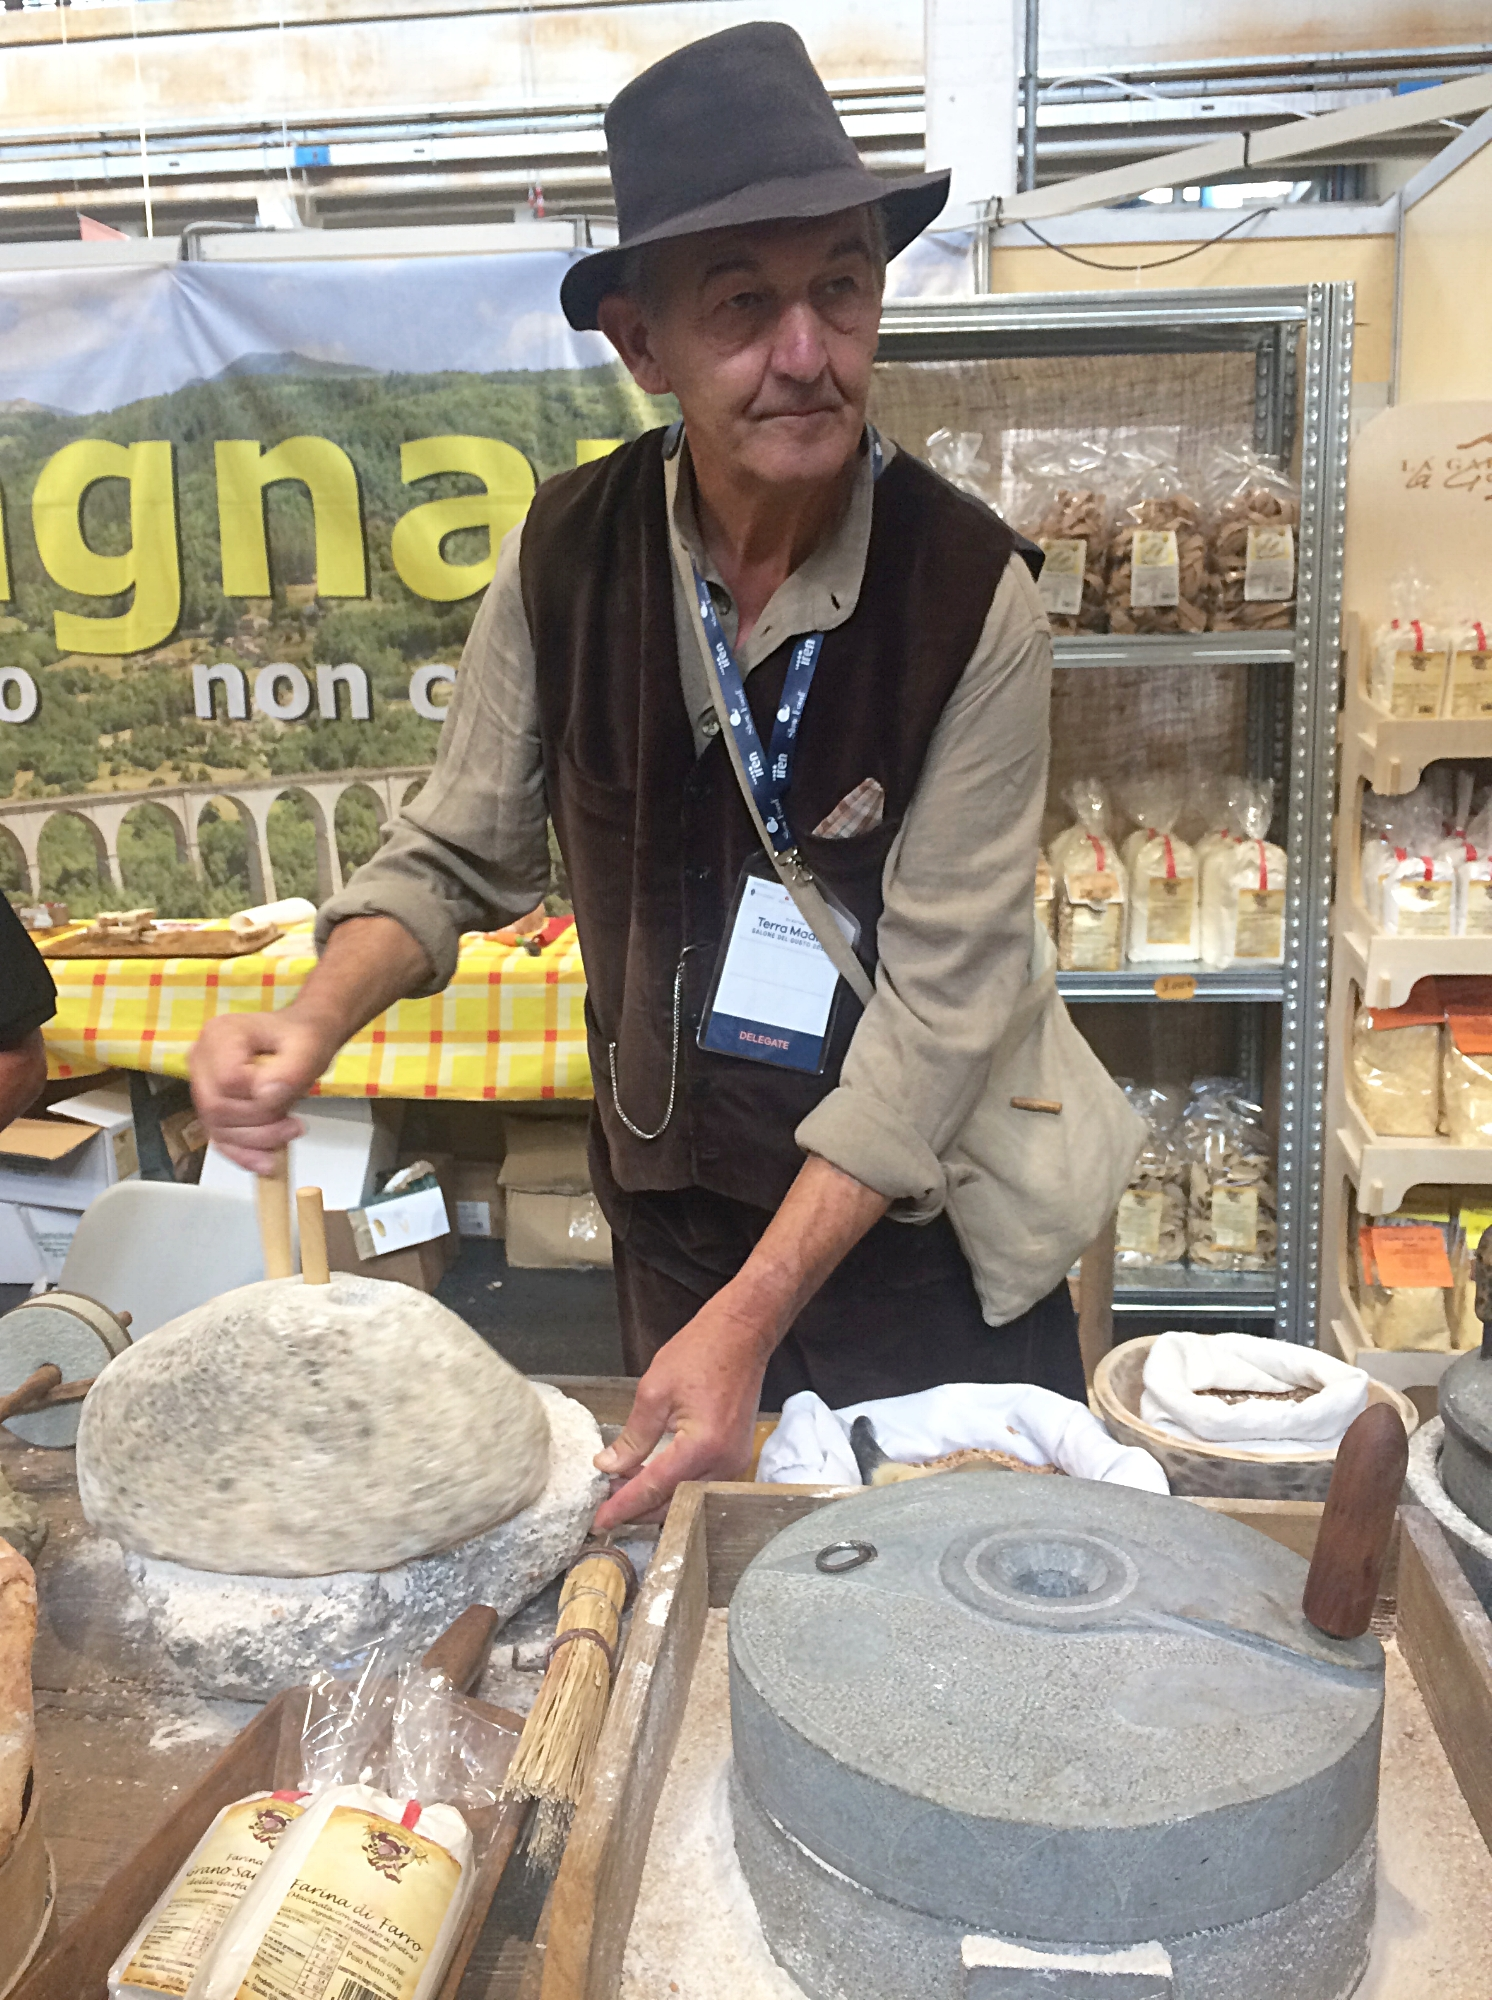 A local farmer from Tuscany demonstrates ancient stone mills. Thank goodness we at The Mill at Janie's Farm have more modern stone-grinding technology!